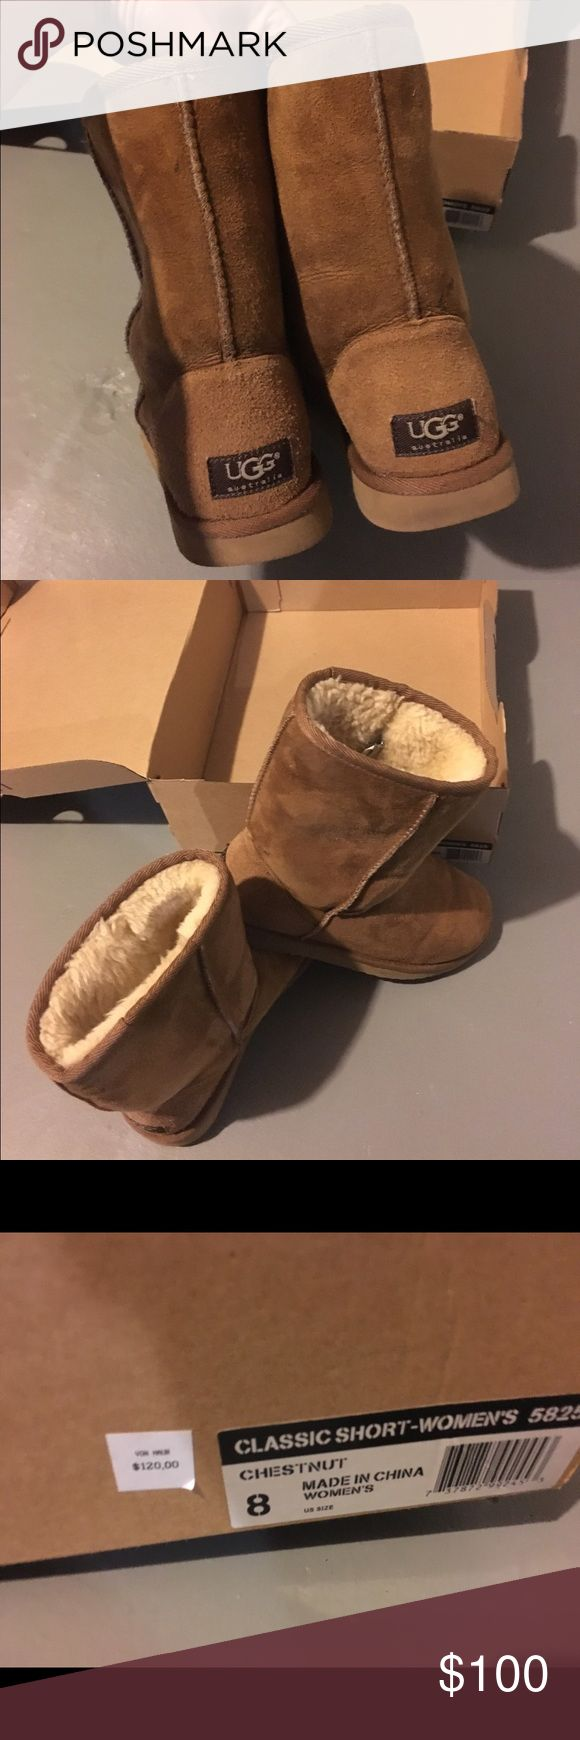 Short Classic Chestnut UGGs Short chestnut color UGG boots UGG Shoes Winter & Rain Boots